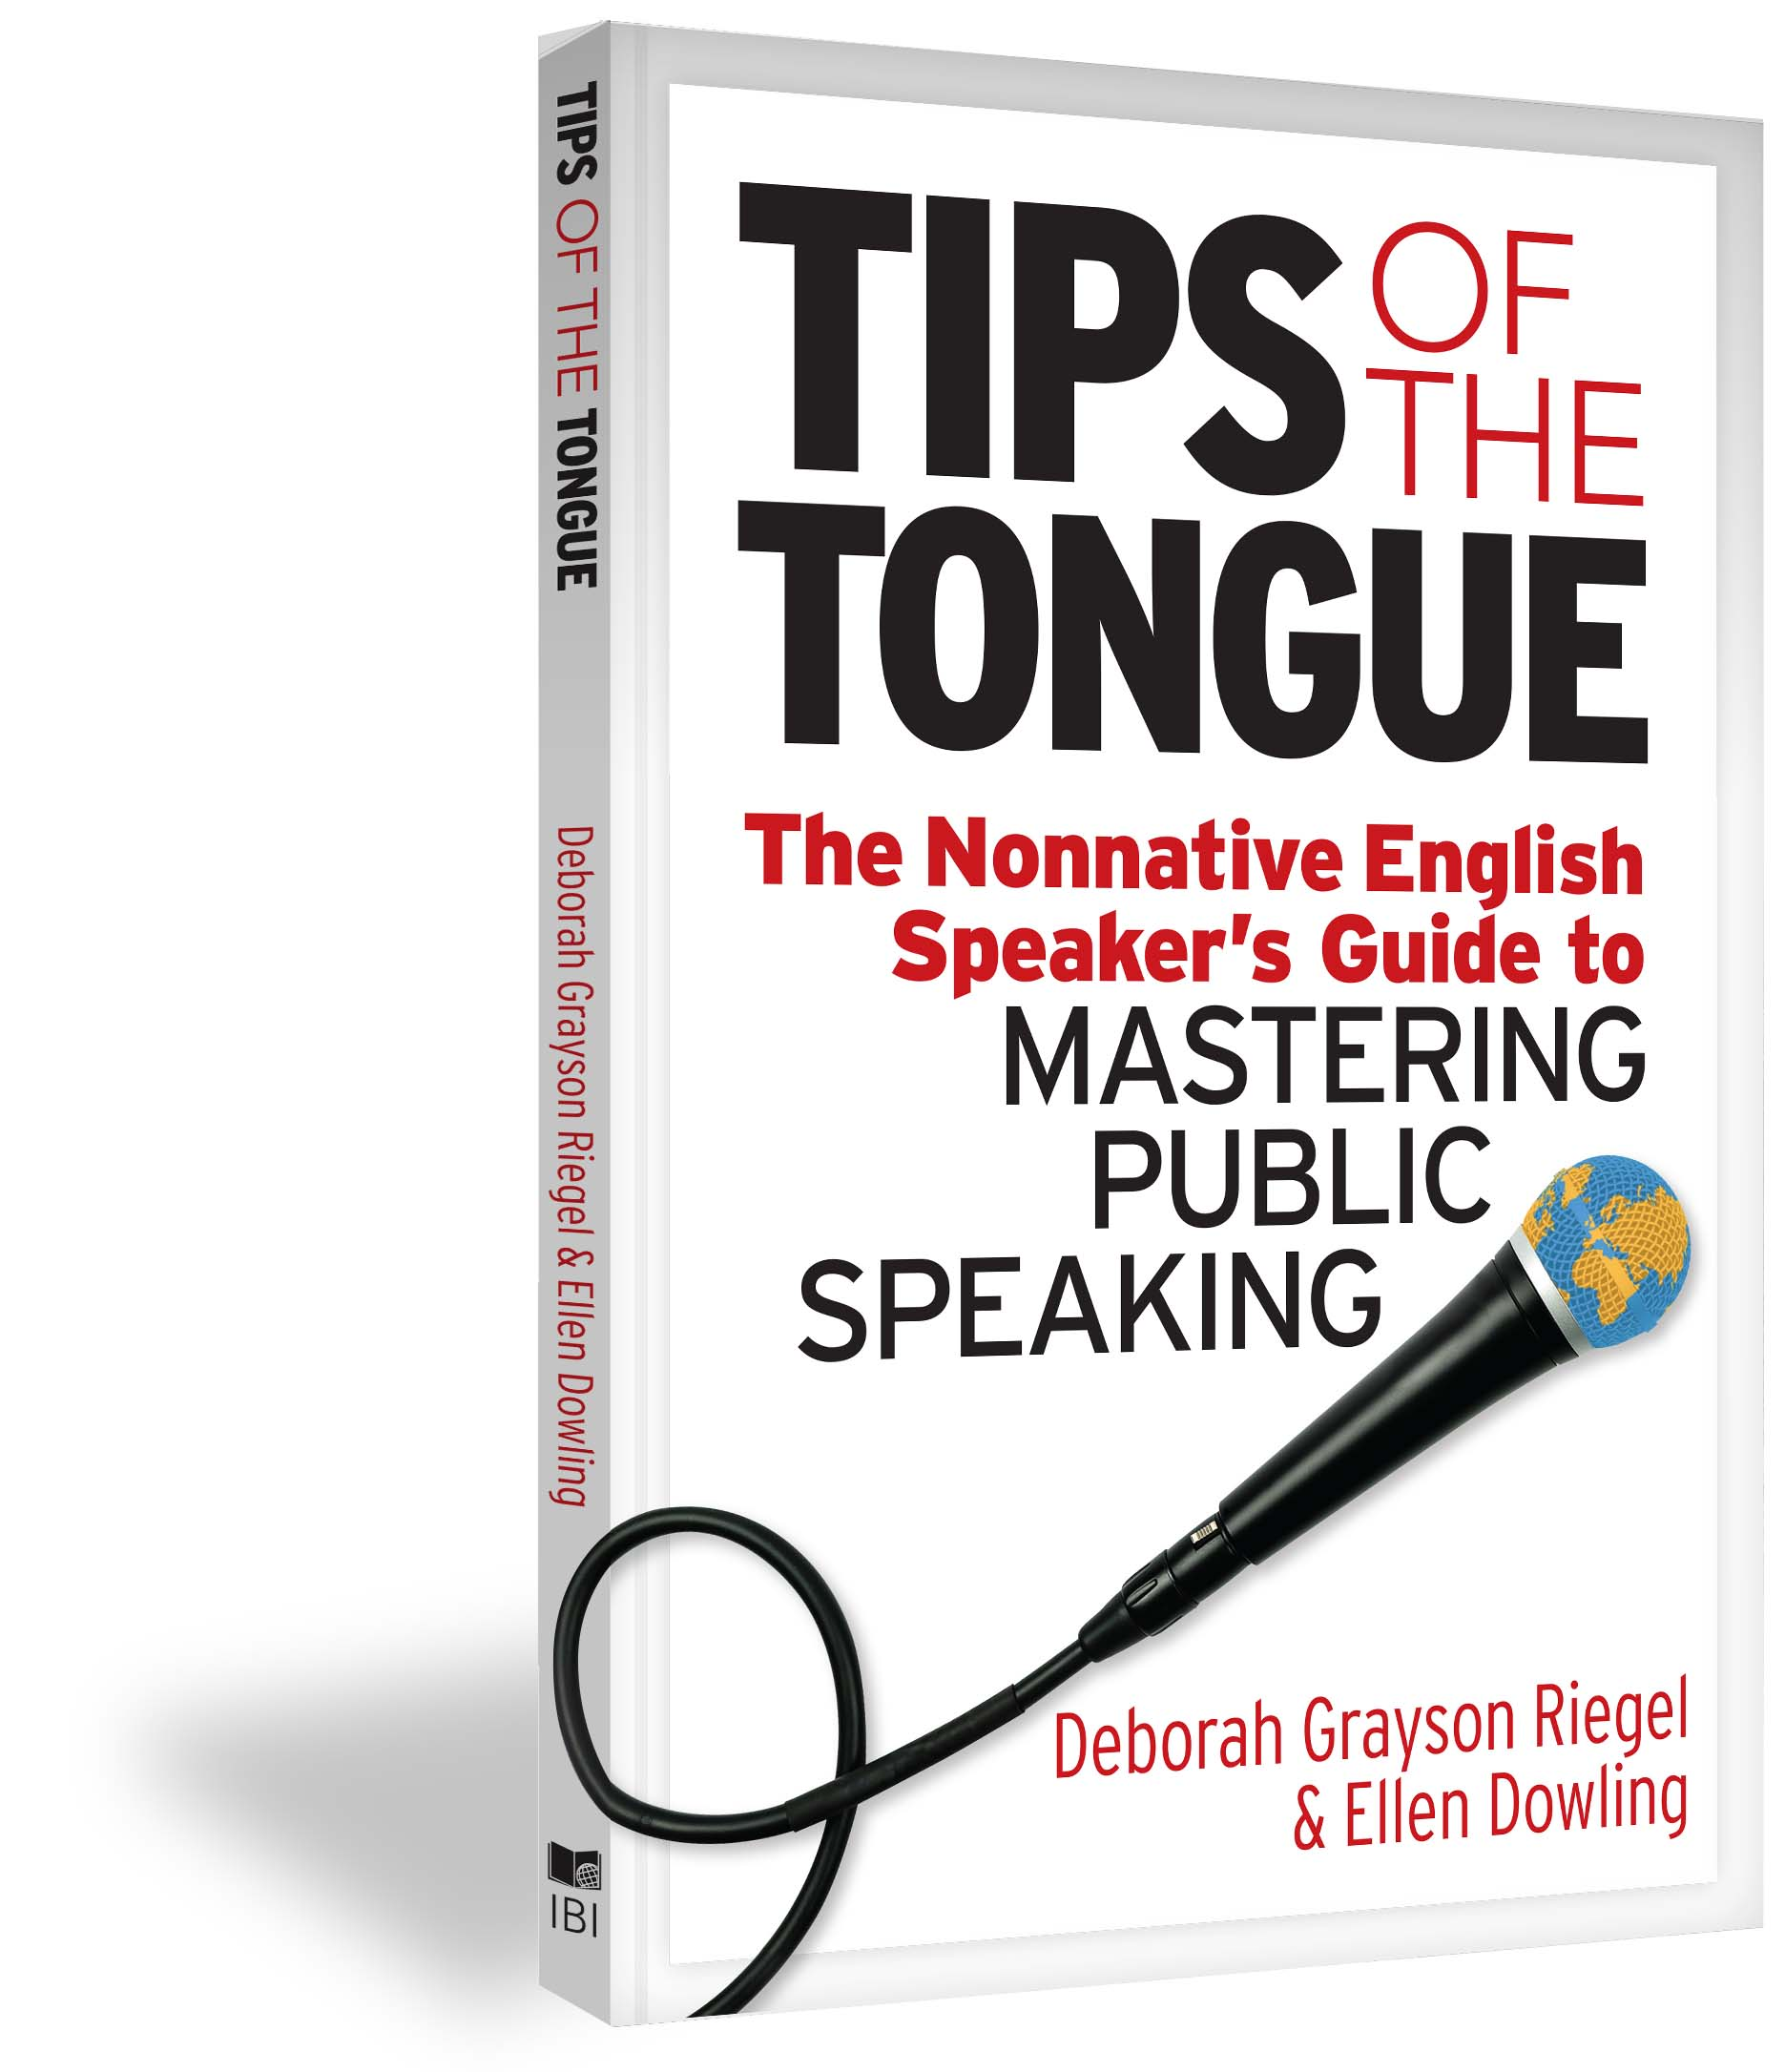 Tips of the Tongue - Deborah Grayson Riegel & Ellen Dowling